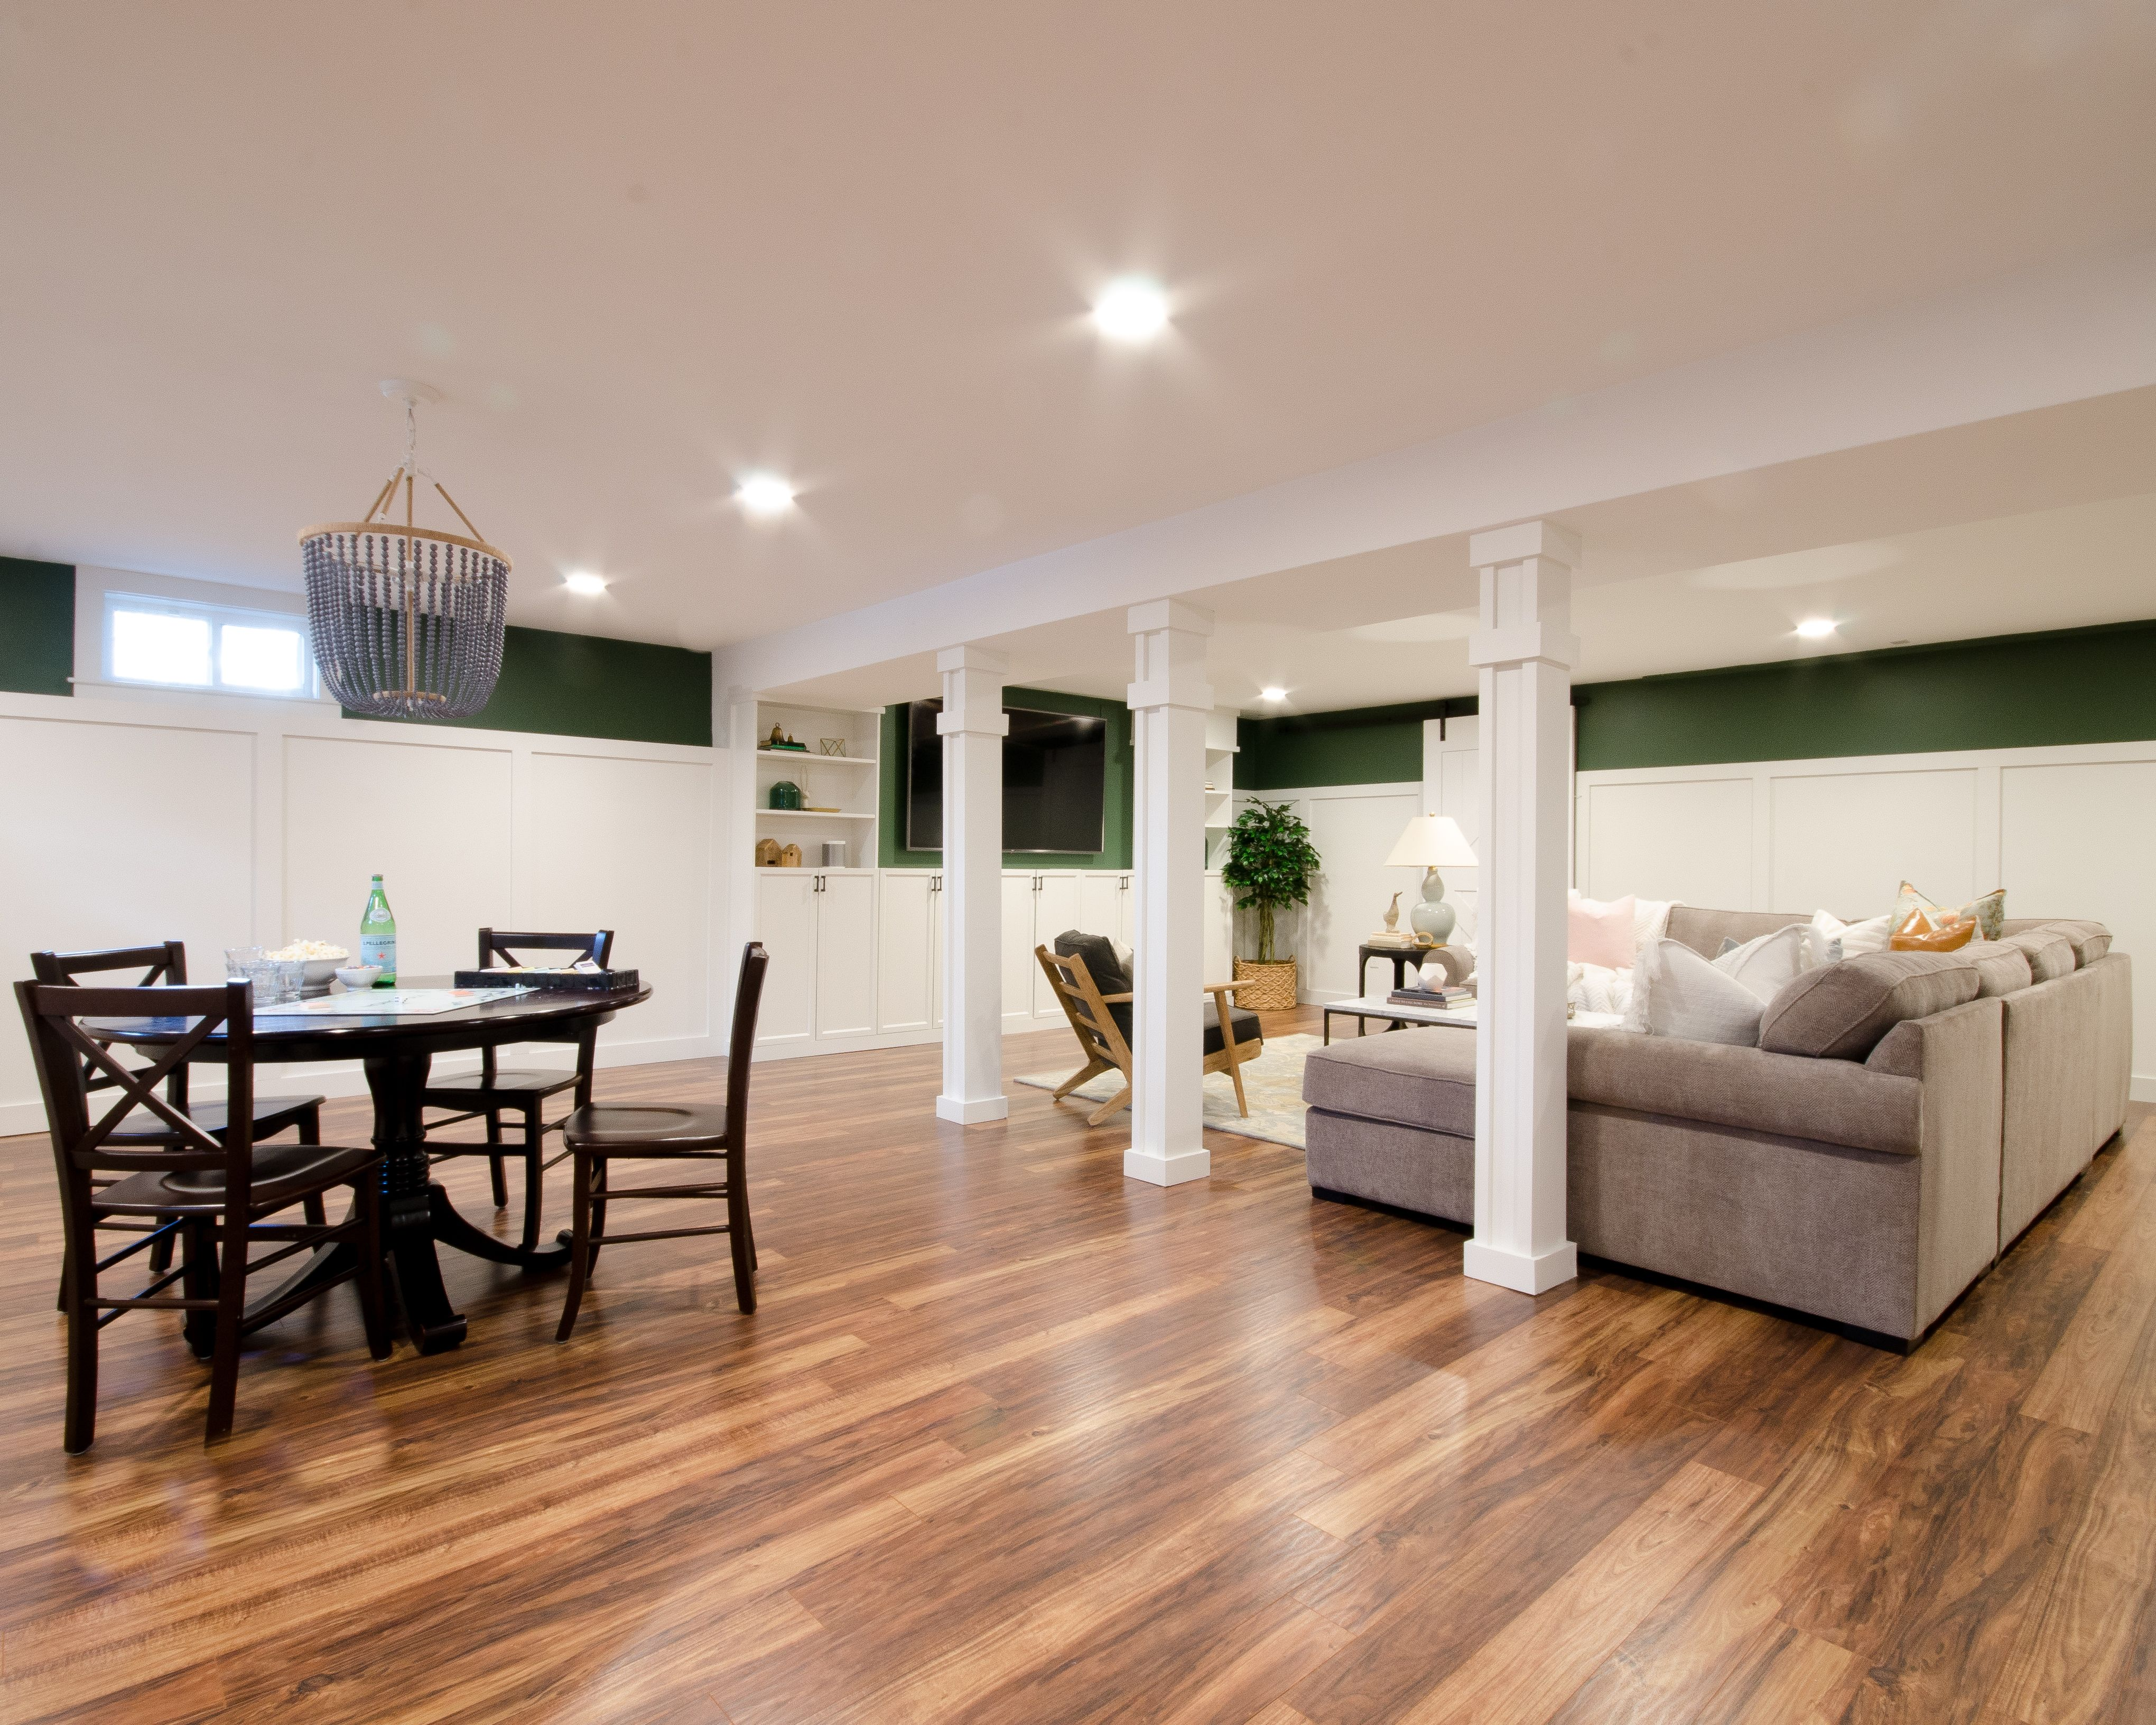 Photo of Finished Basement Family Room Makeover Start to Finish